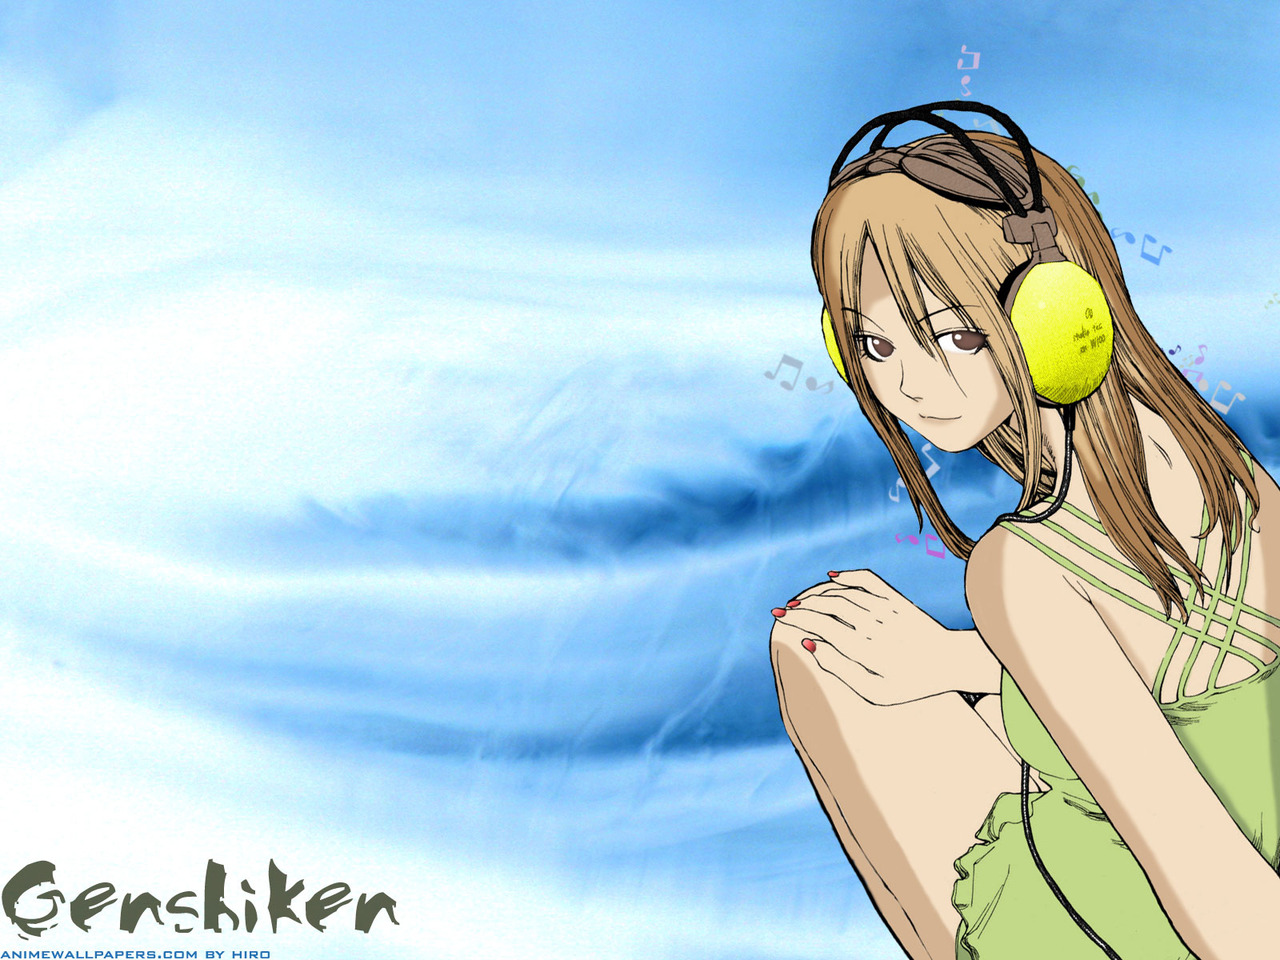 Genshiken Anime Wallpaper # 1